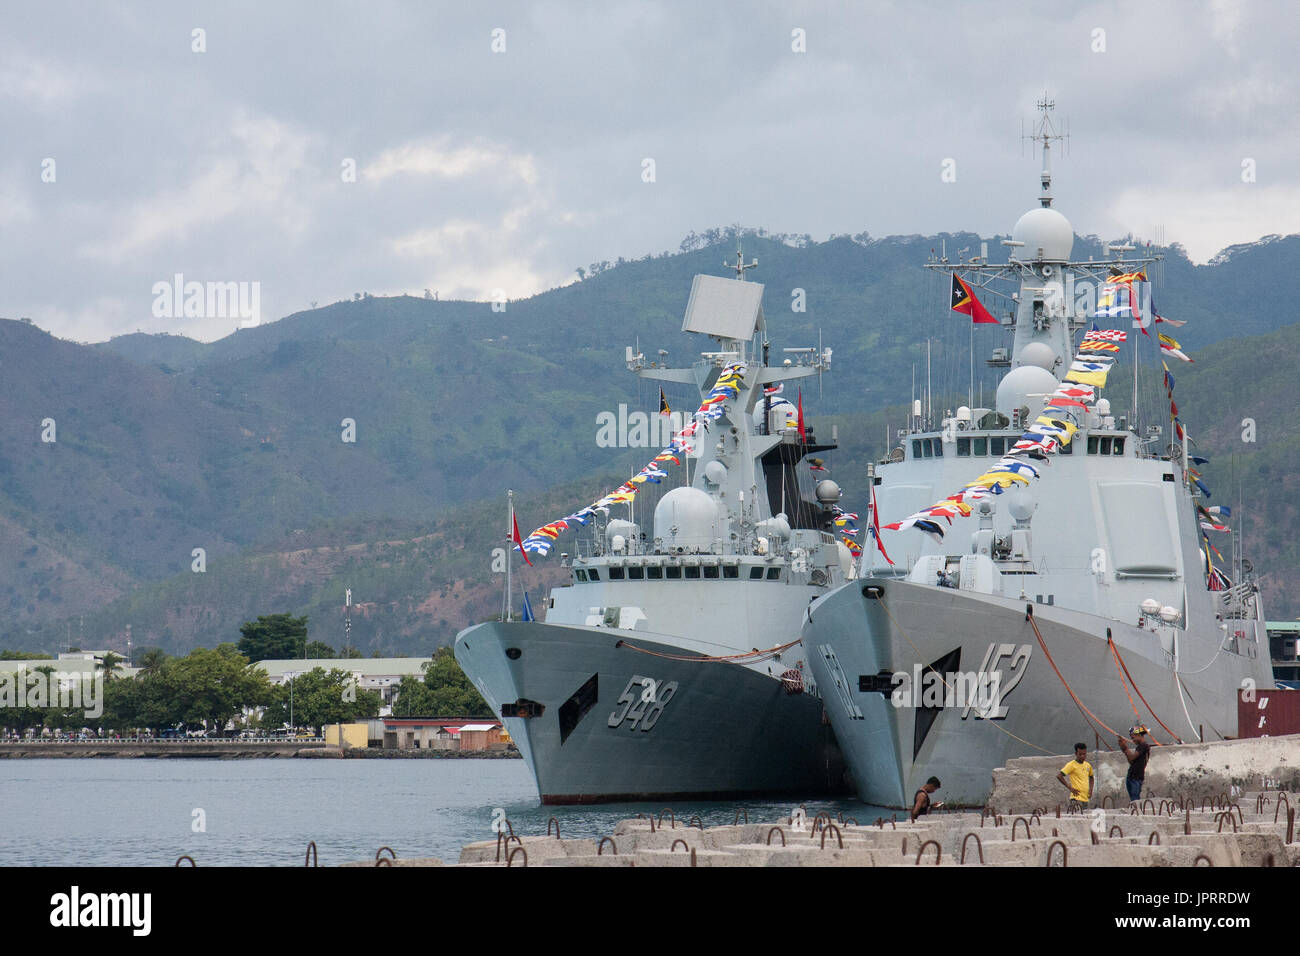 Dili, East Timor. Chienese warships in Dili harbour - Stock Image